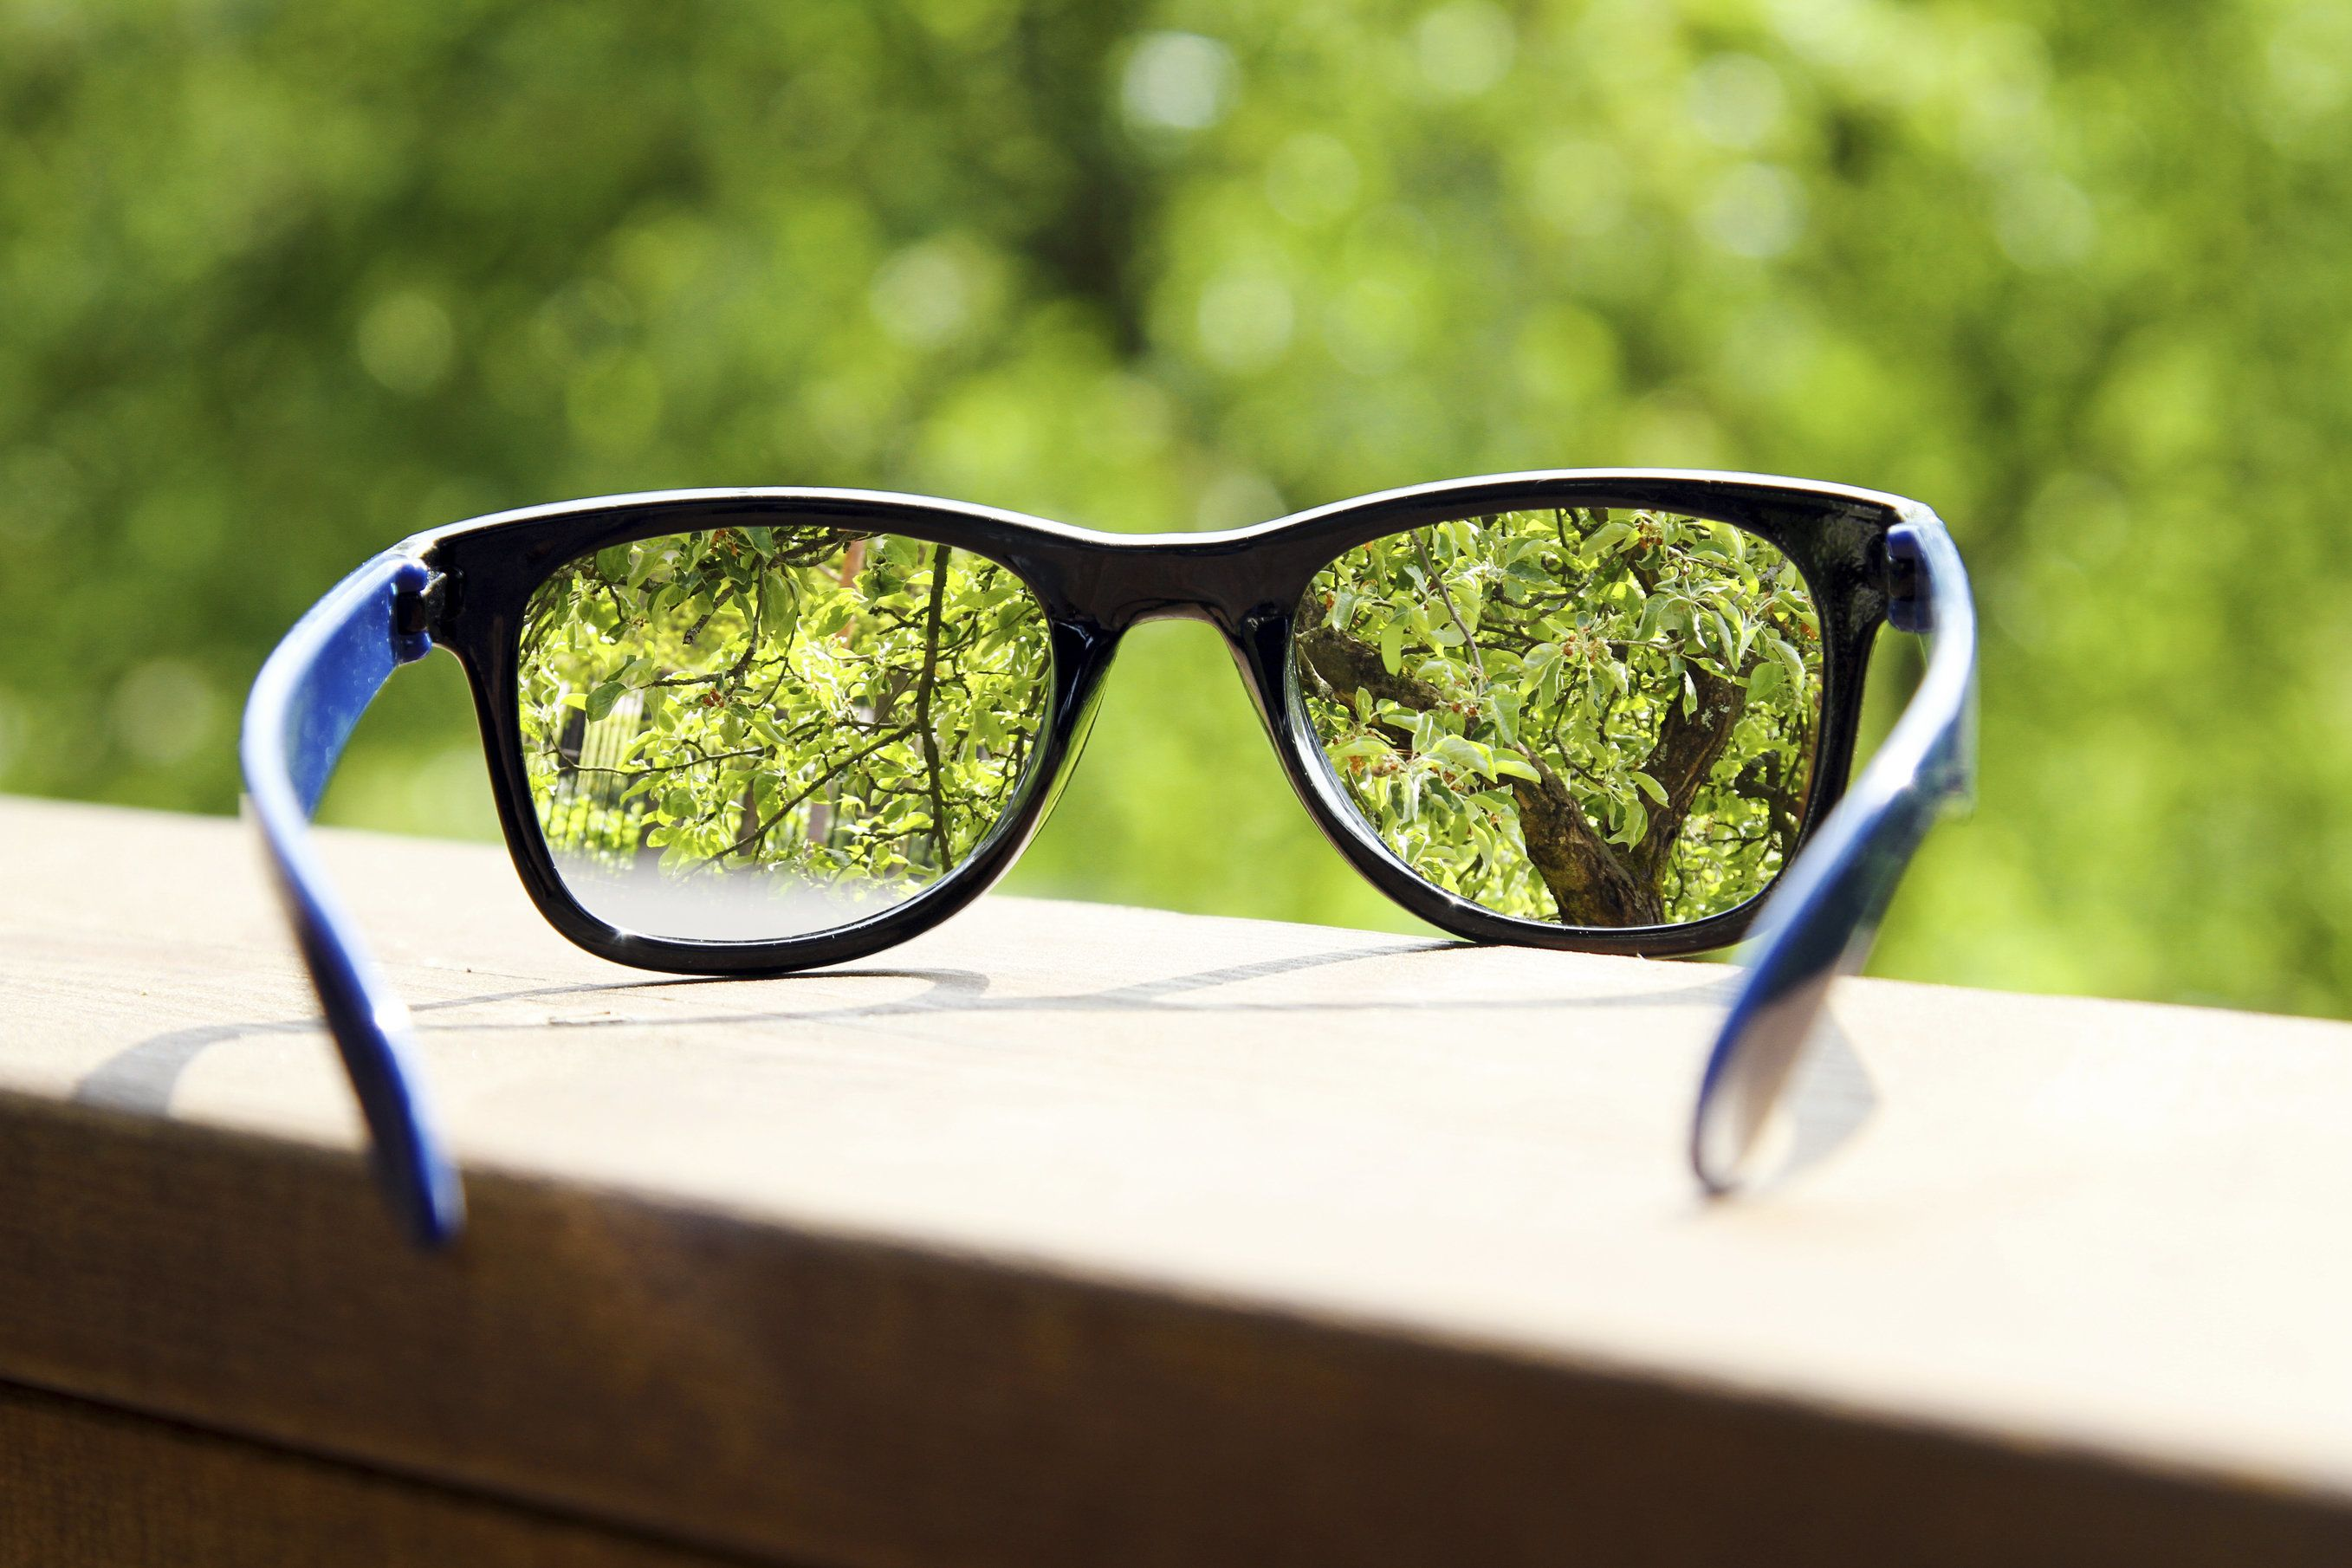 pair of eyeglasses focused on trees